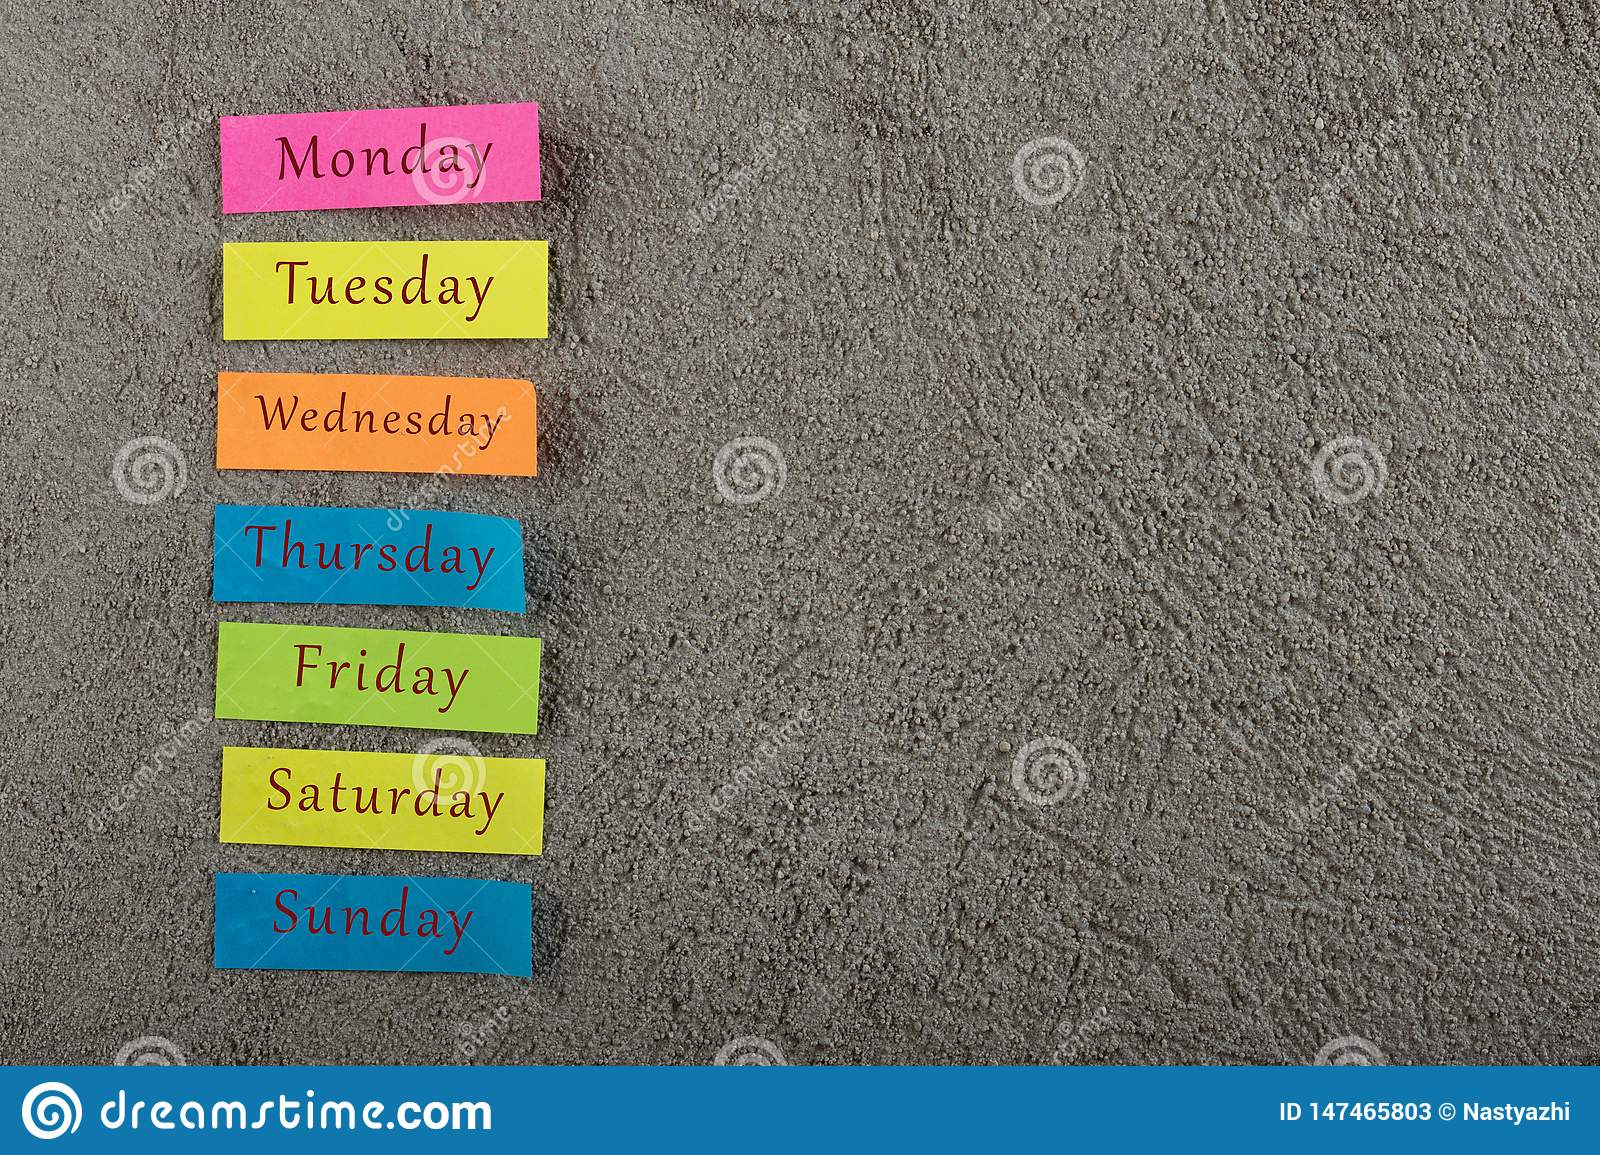 sticky note with days of week on grey cement background. Monday, Tuesday, Wednesday, Thursday, Friday, Saturday, and Sunday